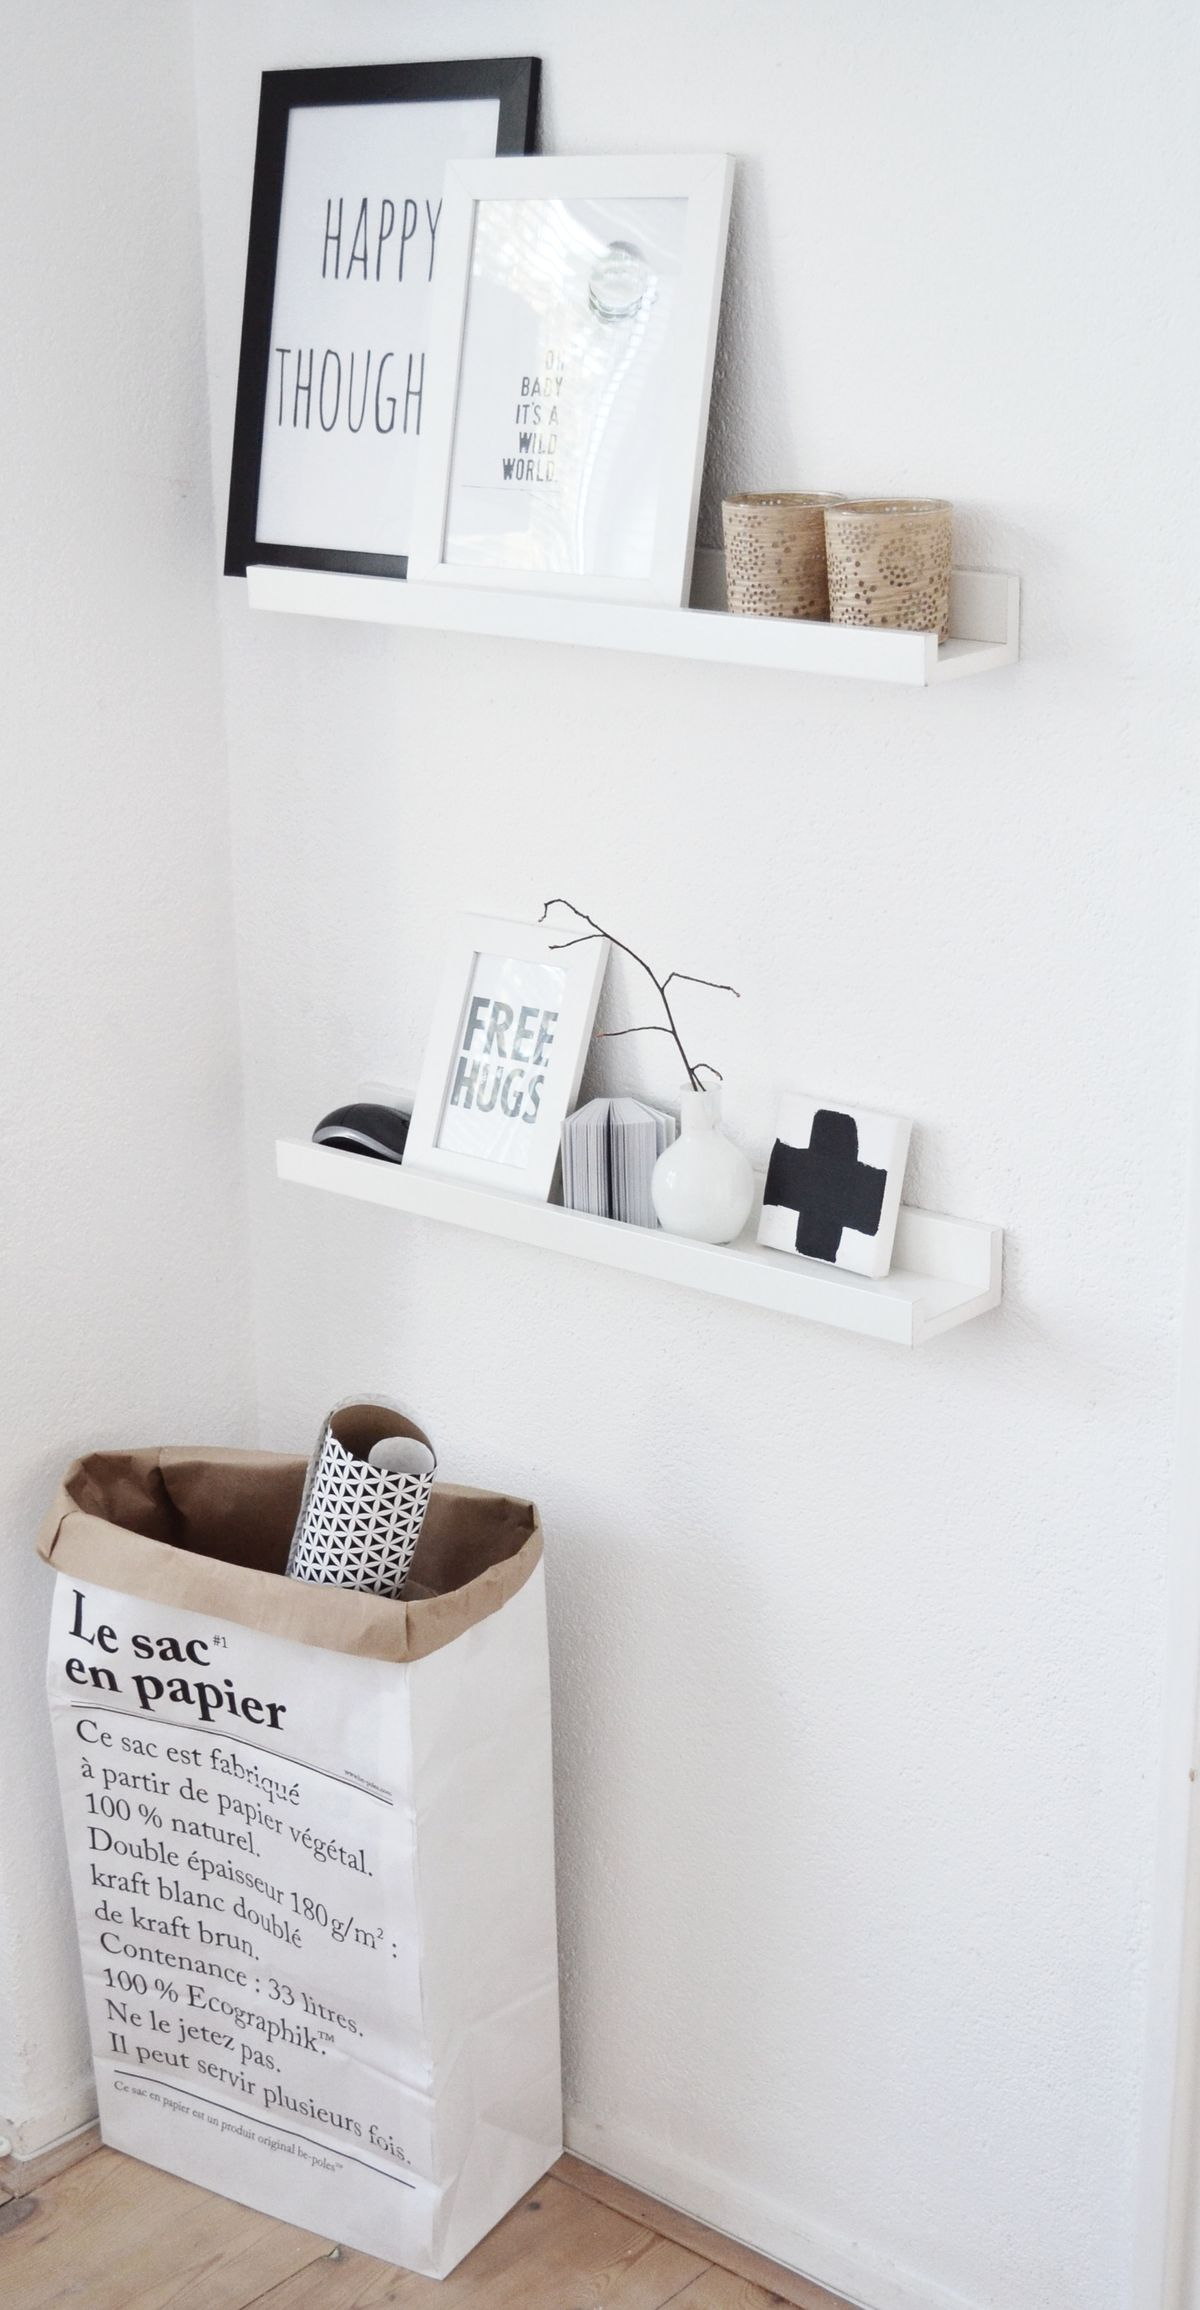 1000 images about le sac en papier on pinterest paper bags love warriors and search. Black Bedroom Furniture Sets. Home Design Ideas